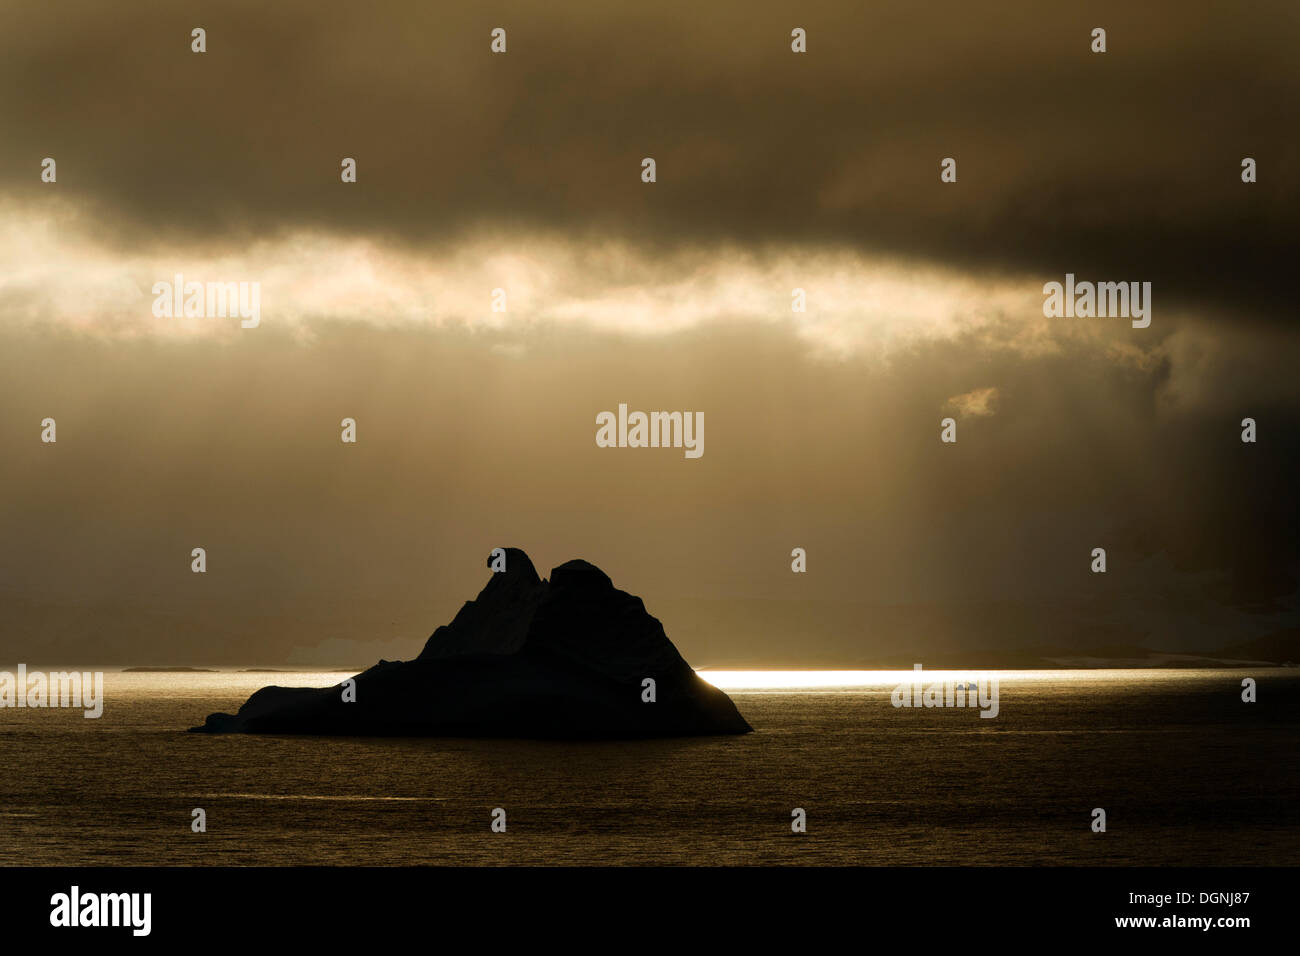 Sunlight shining through a hole in the clouds, silhouette of an iceberg at the front, Errera Channel, Arctowski Stock Photo